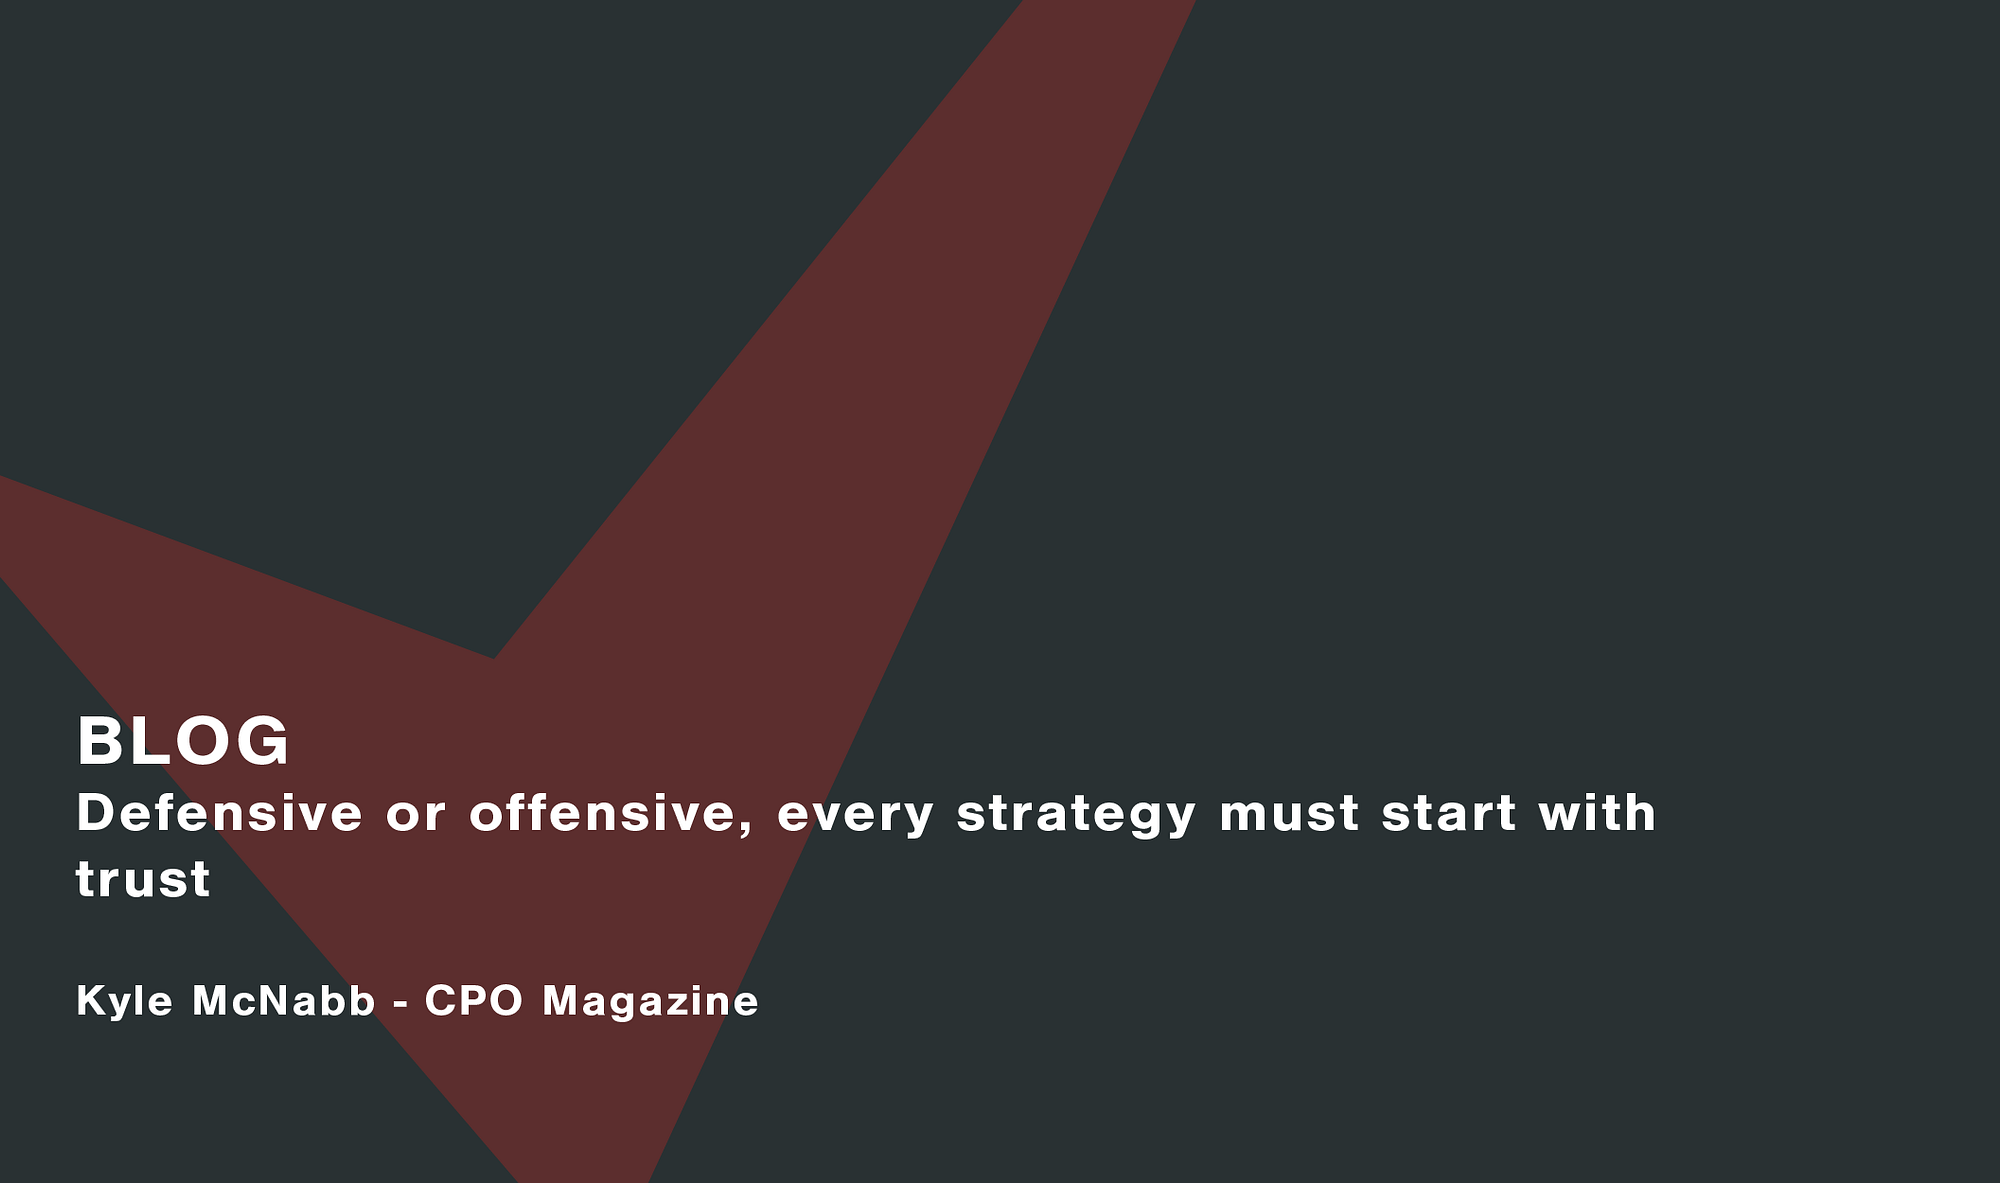 Defensive-or-offensive-every-strategy-must-start-with-trust